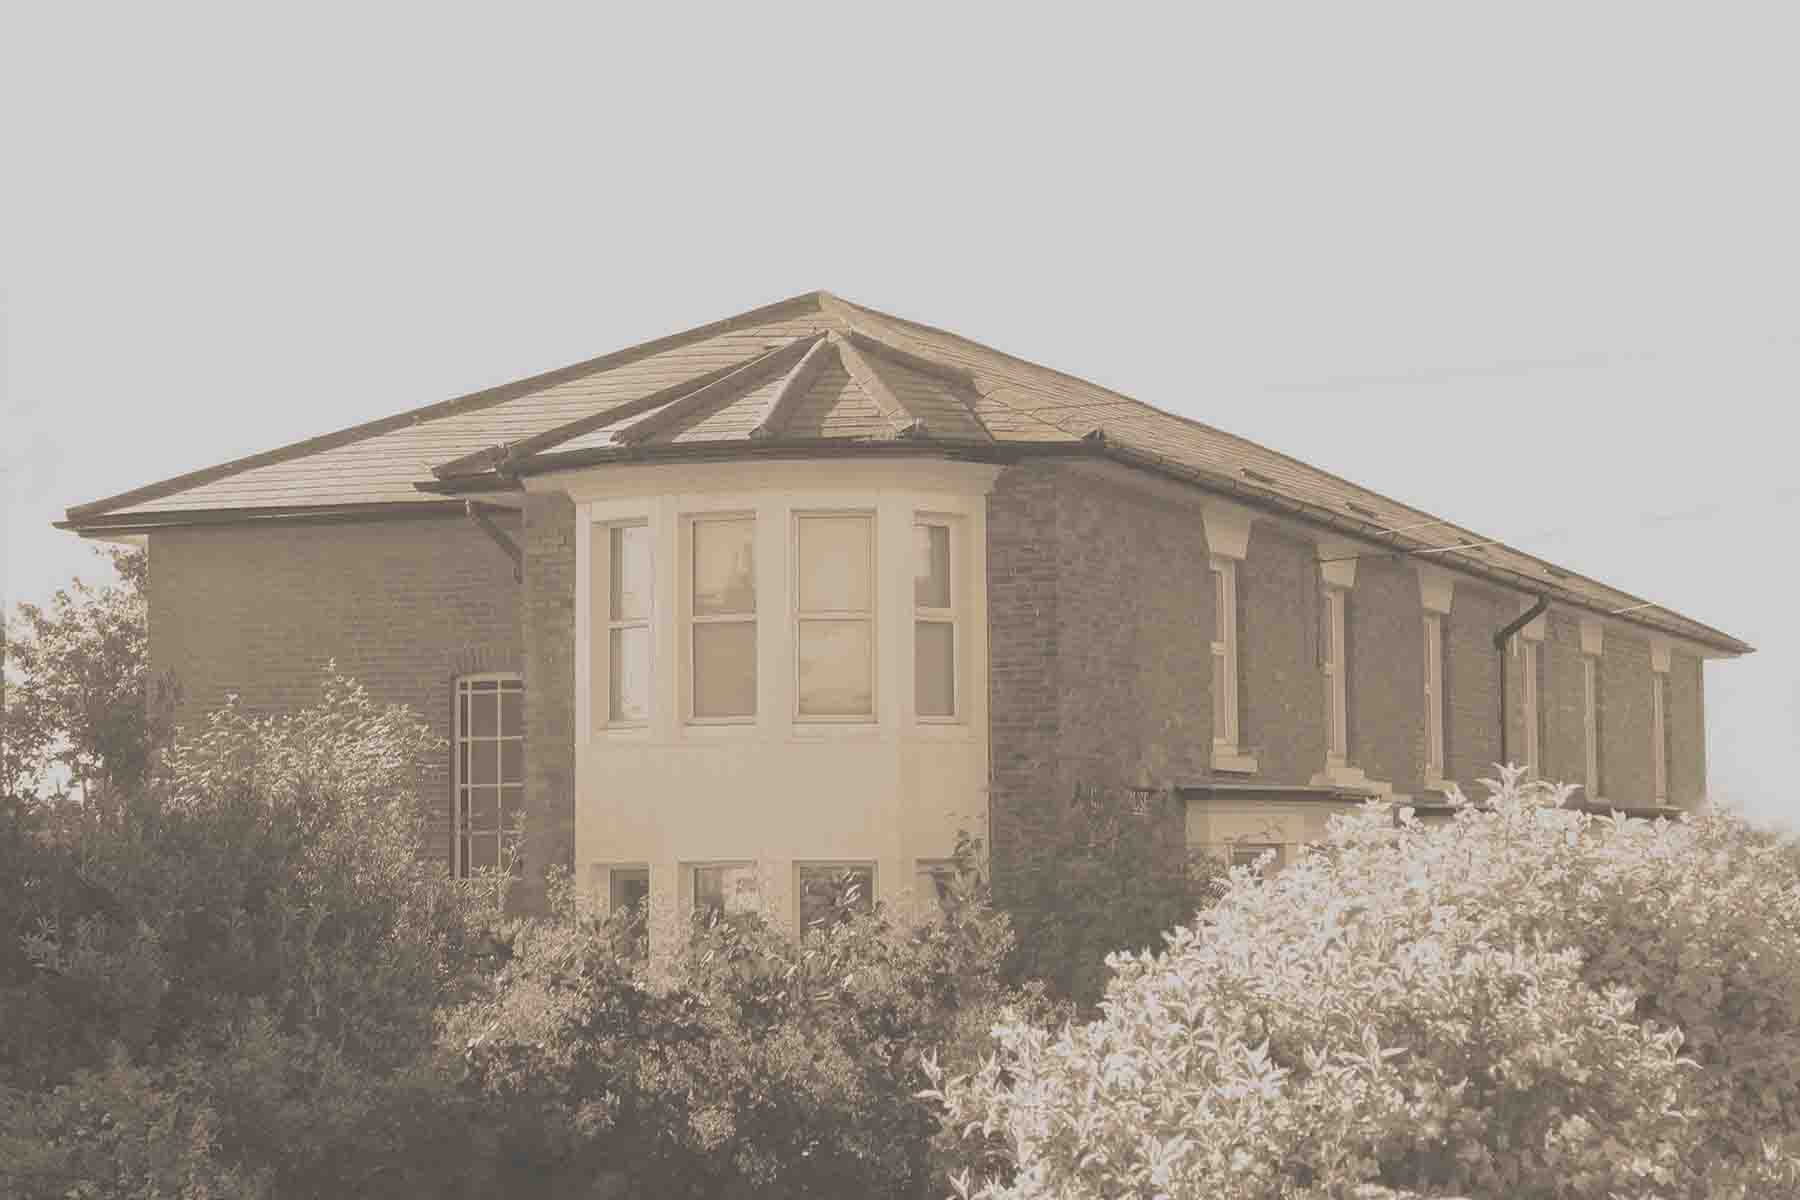 Heath House Conference Centre, Uttoxeter - Staffordshire, Sepia photograph